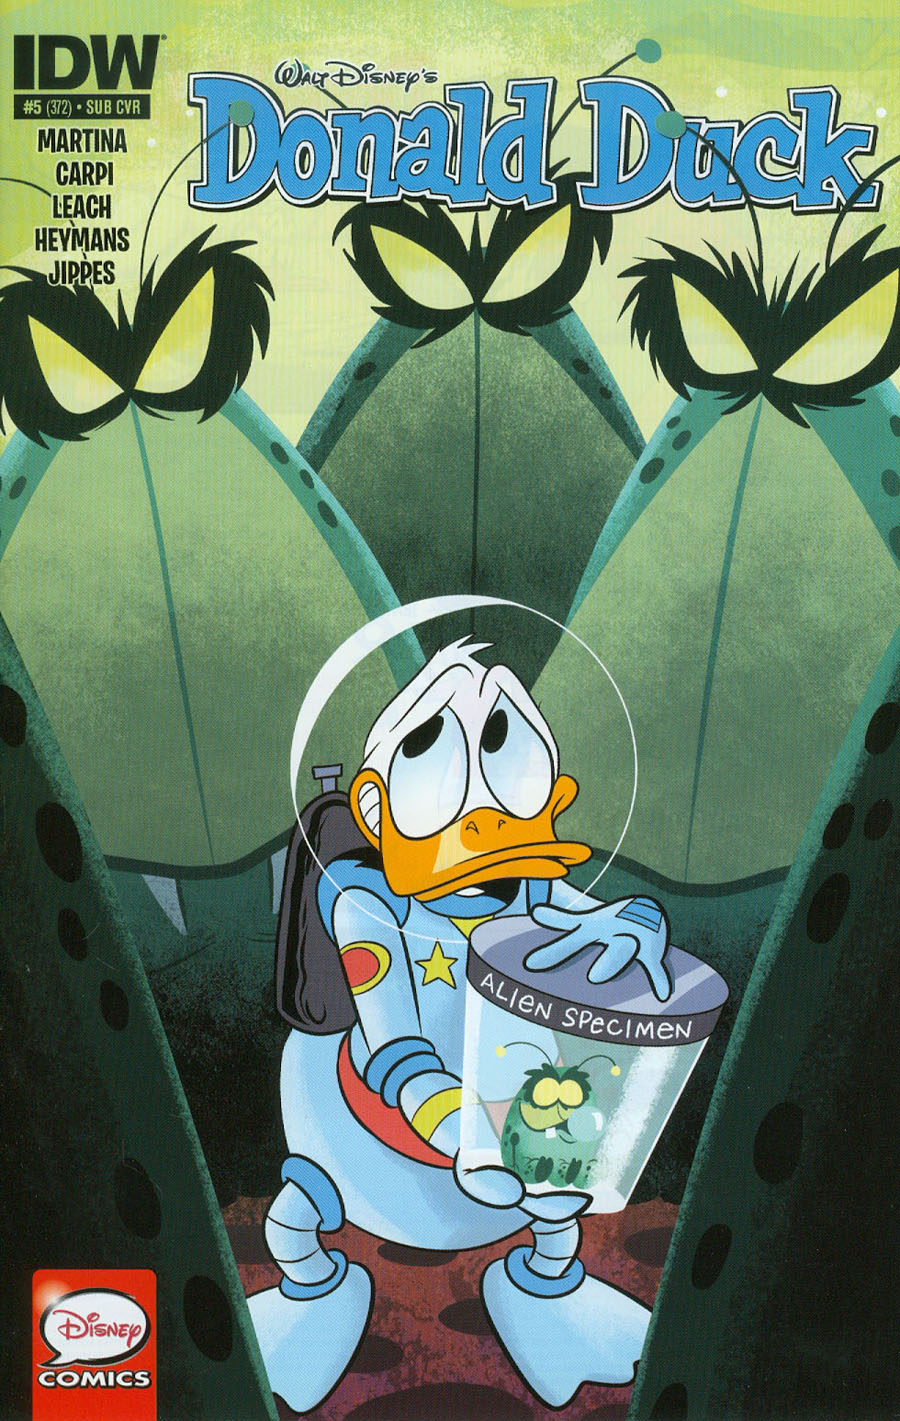 Donald Duck Vol 2 #5 Cover B Variant Derek Charm Subscription Cover